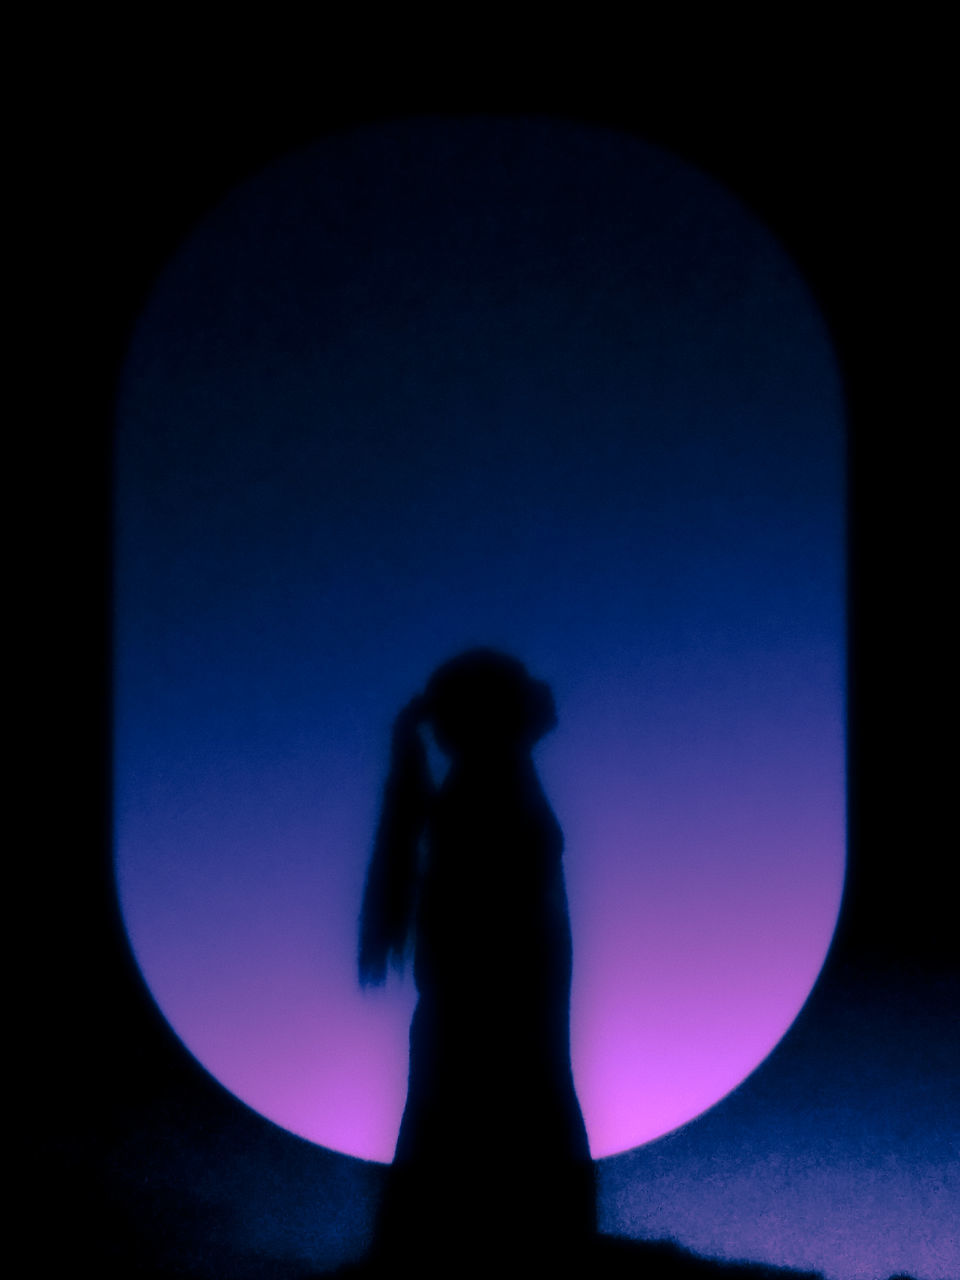 REAR VIEW OF SILHOUETTE WOMAN STANDING AGAINST DARK SKY